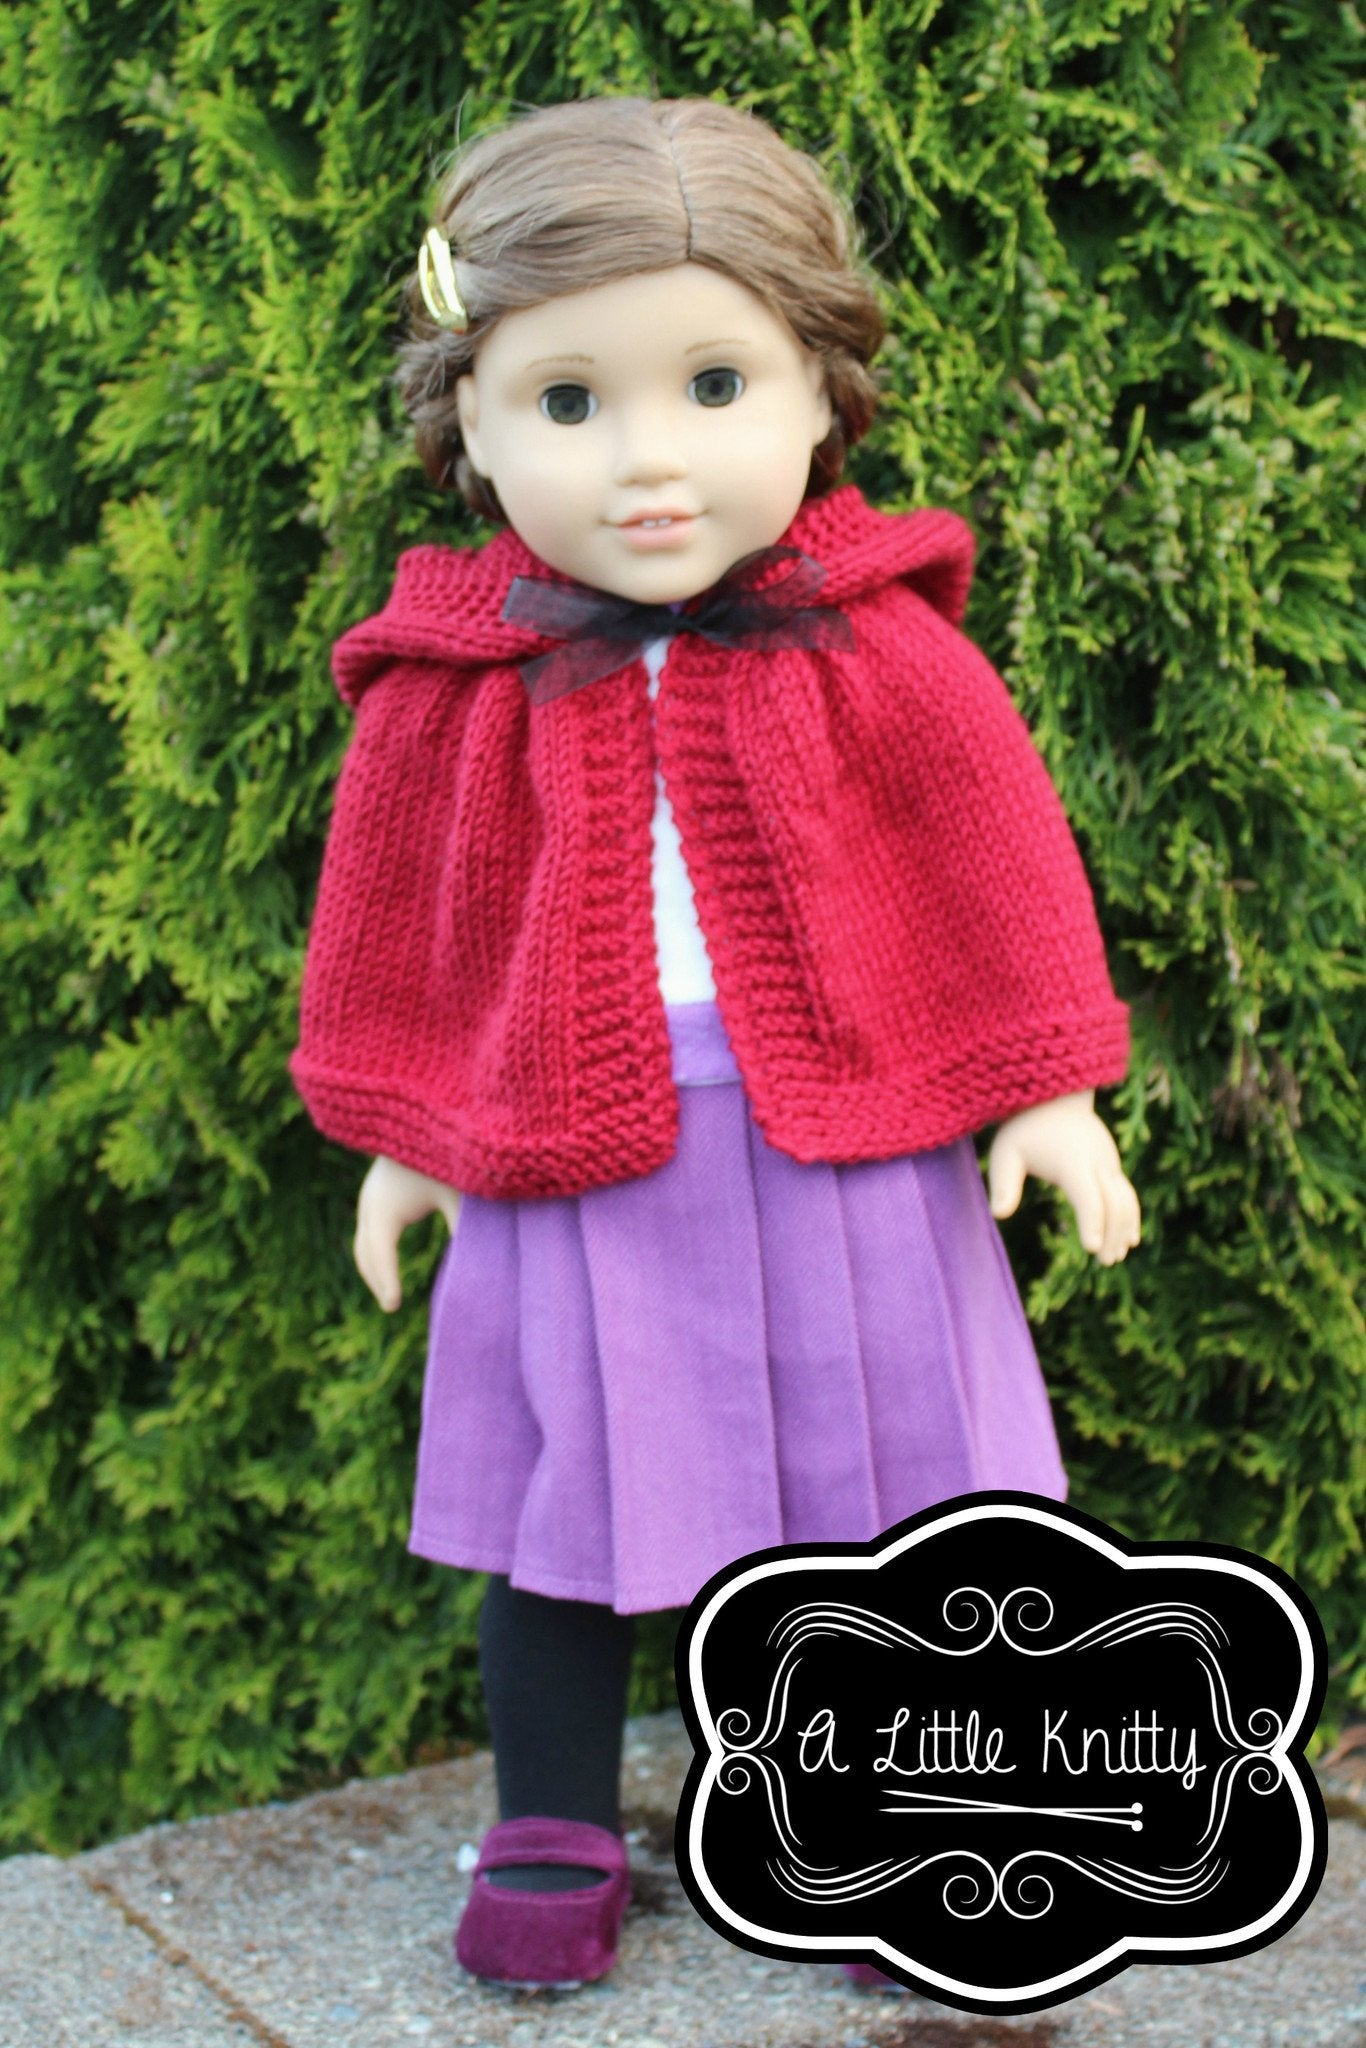 A little knitty addy hooded cape doll clothes pattern 18 inch addy hooded cape knitting pattern bankloansurffo Image collections